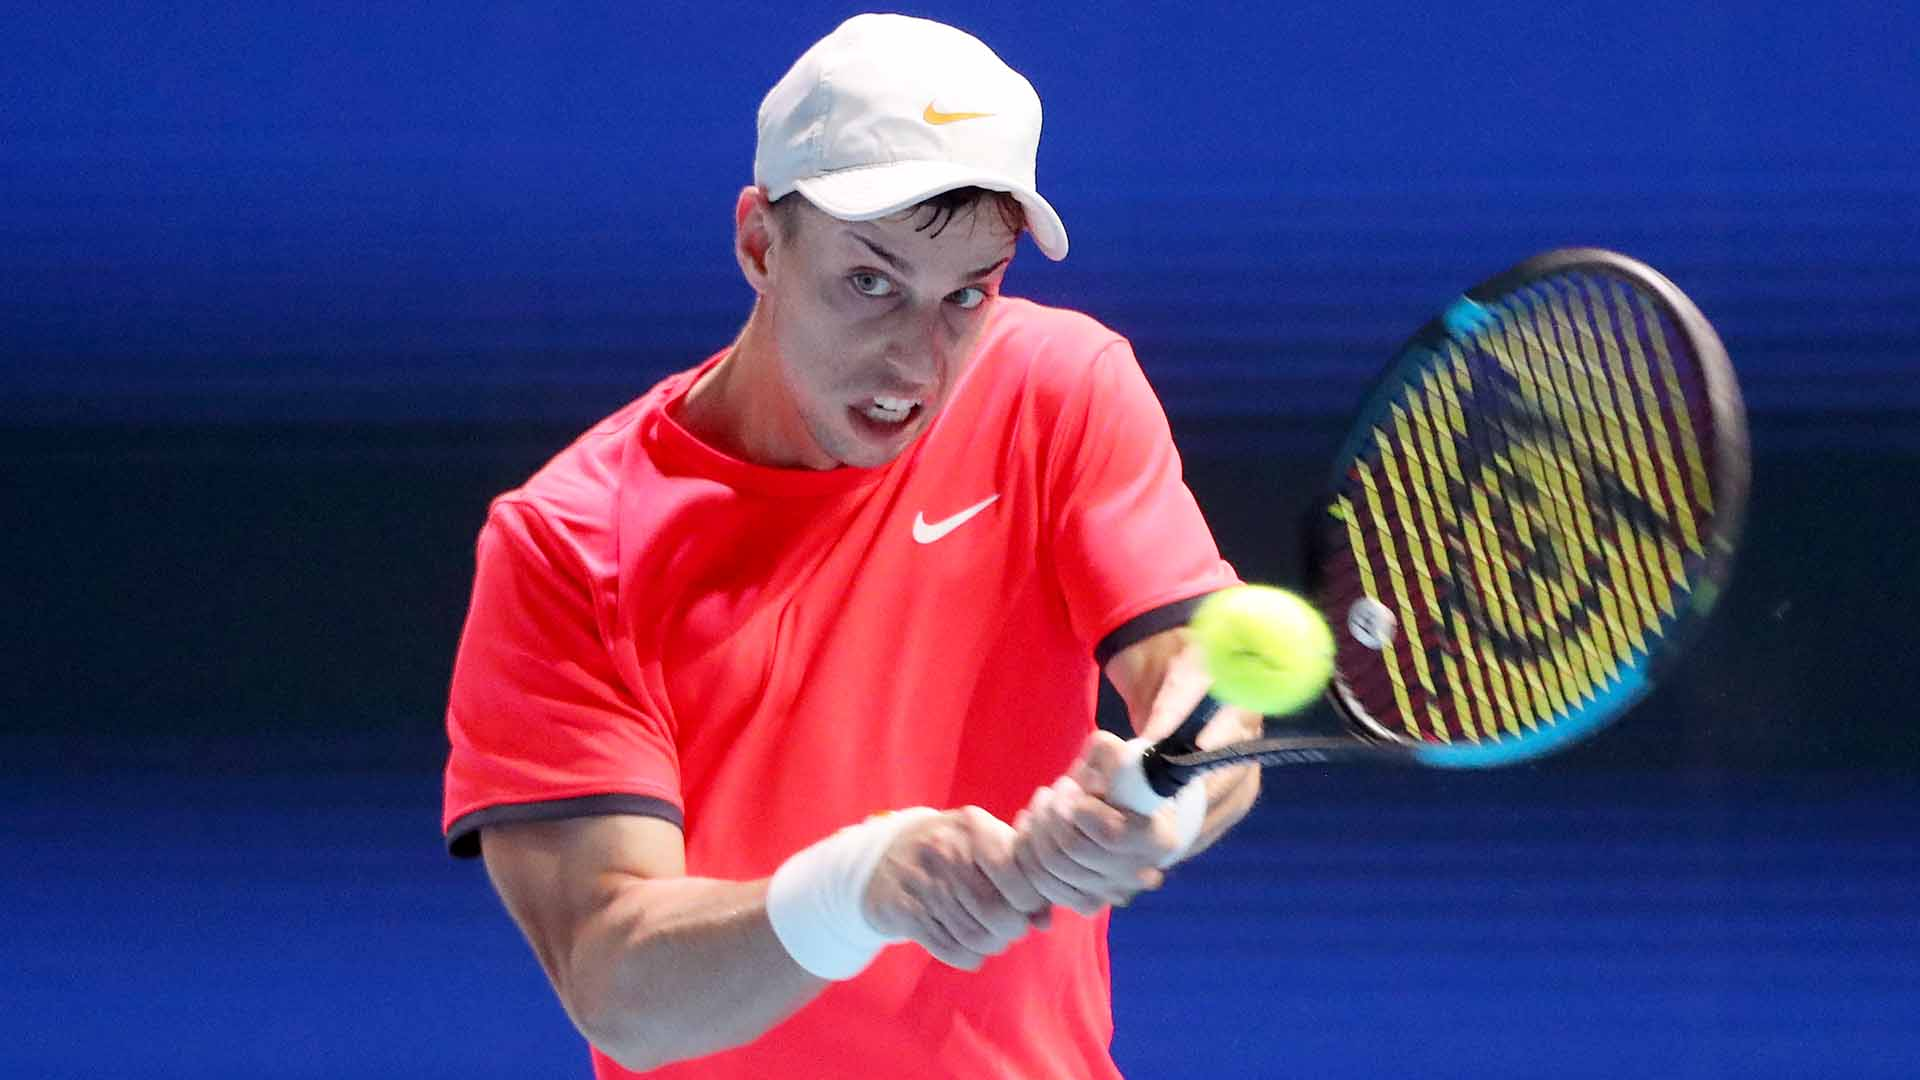 <a href='https://www.atptour.com/en/players/adrian-andreev/a0ab/overview'>Adrian Andreev</a> saves 12 of 15 break points to overcome <a href='https://www.atptour.com/en/players/lloyd-harris/hg86/overview'>Lloyd Harris</a> at the <a href='https://www.atptour.com/en/tournaments/singapore/9460/overview'>Singapore Tennis Open</a>.